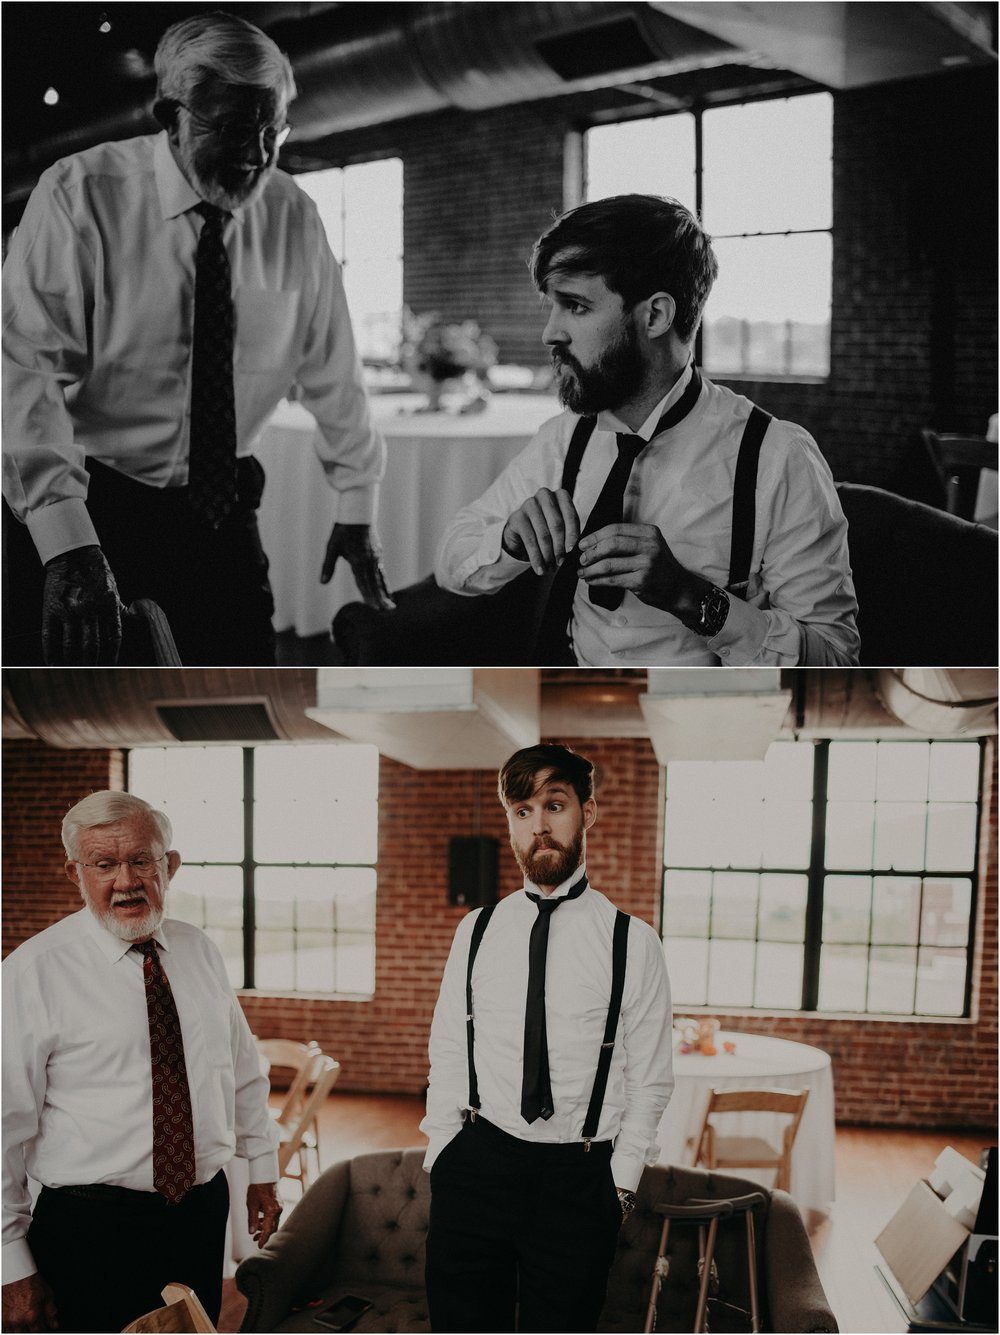 The groom cracks a face after attempting to tie his tie